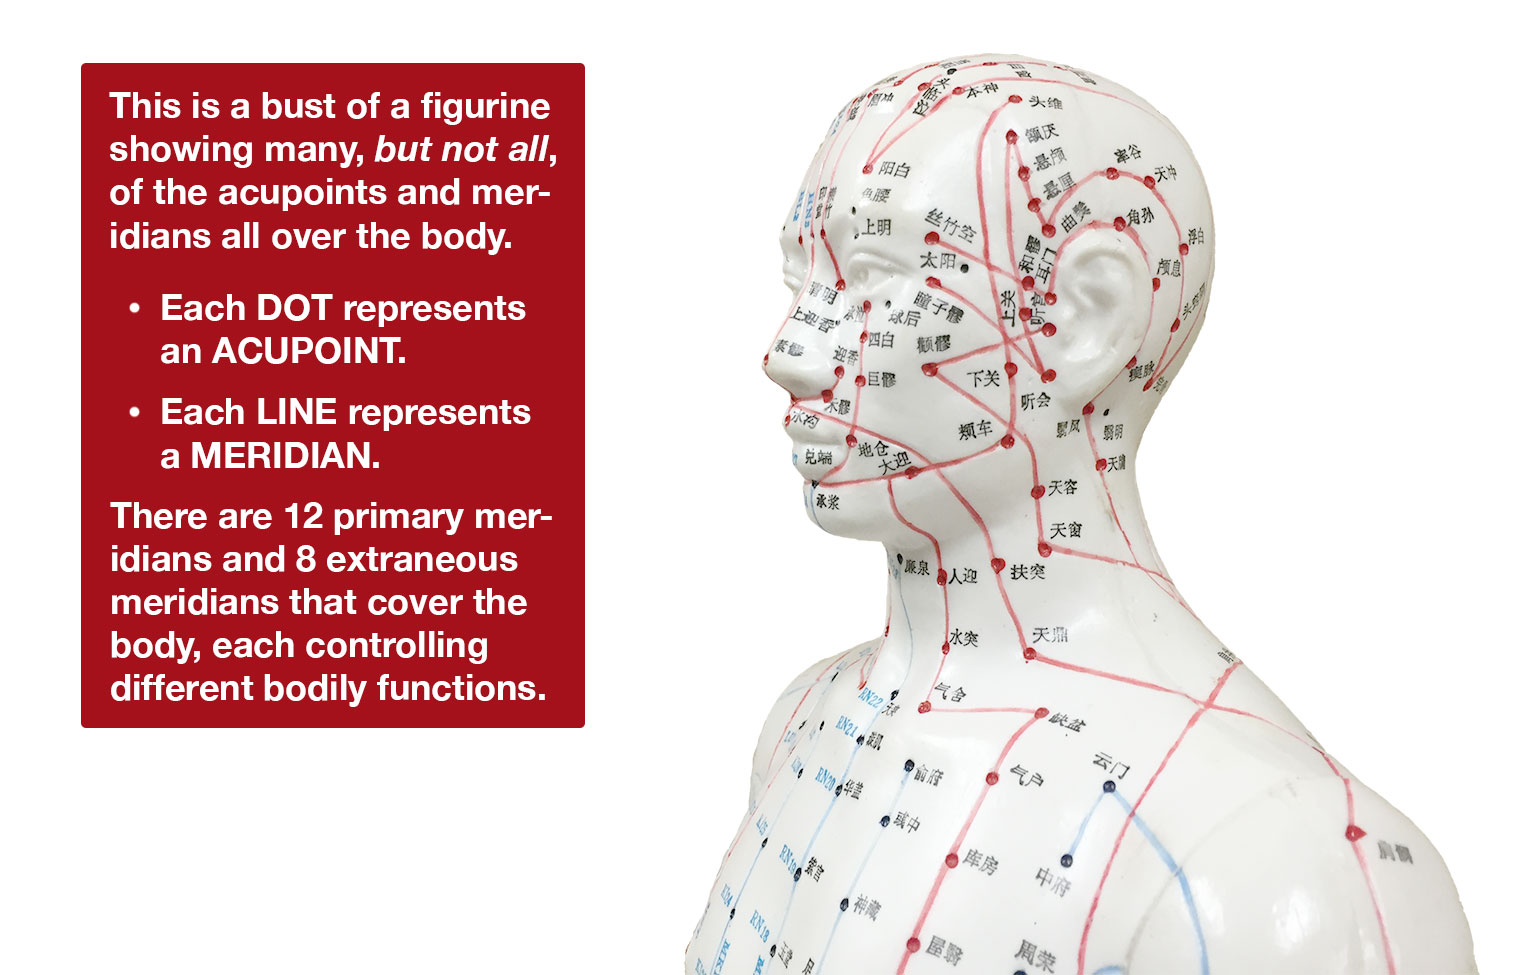 The bust of a figurine showing most, but not all, of the acupuncture points and meridians all over the body.